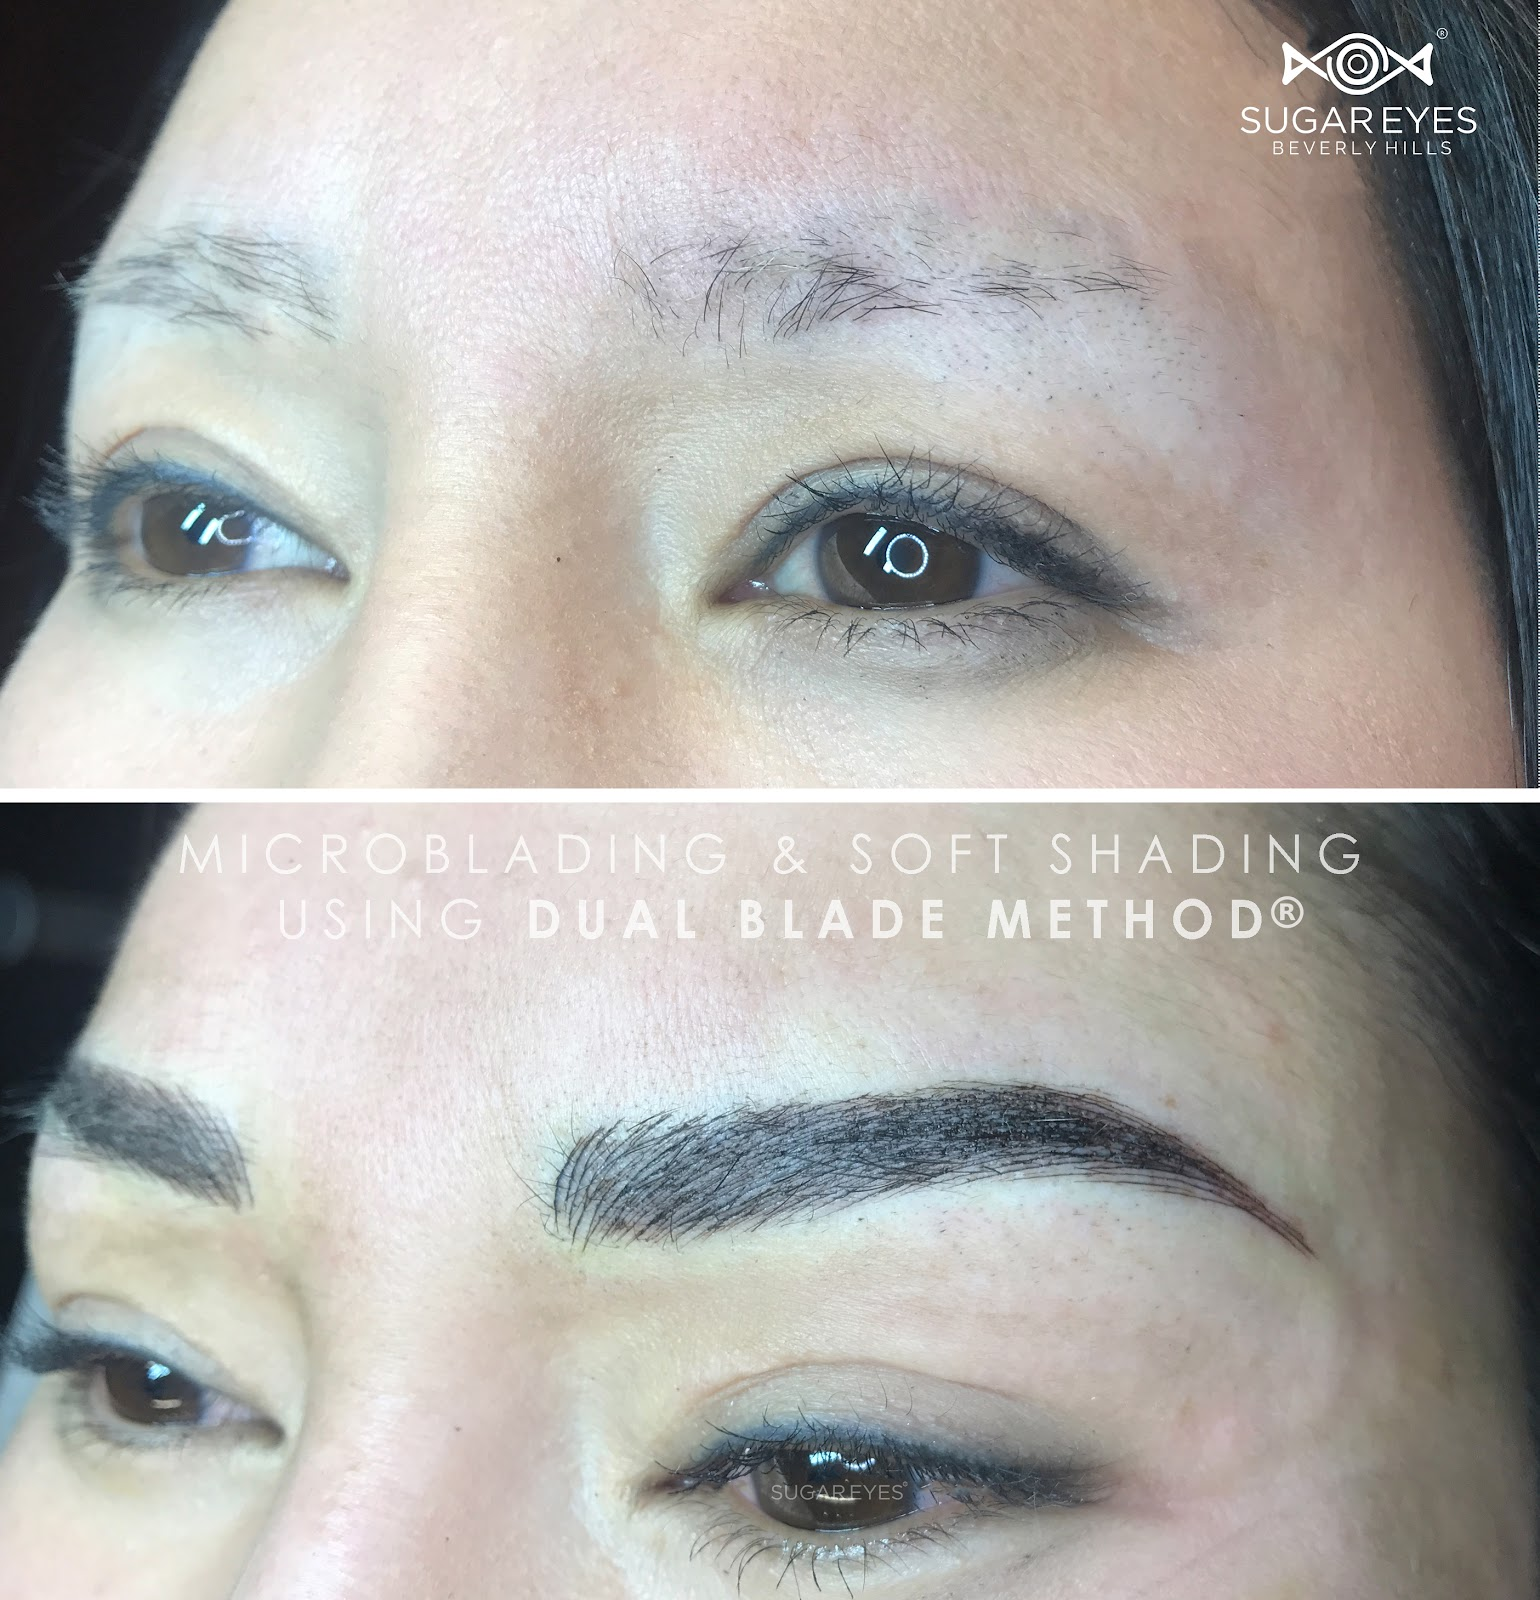 Microblading vs tattooing eyebrows